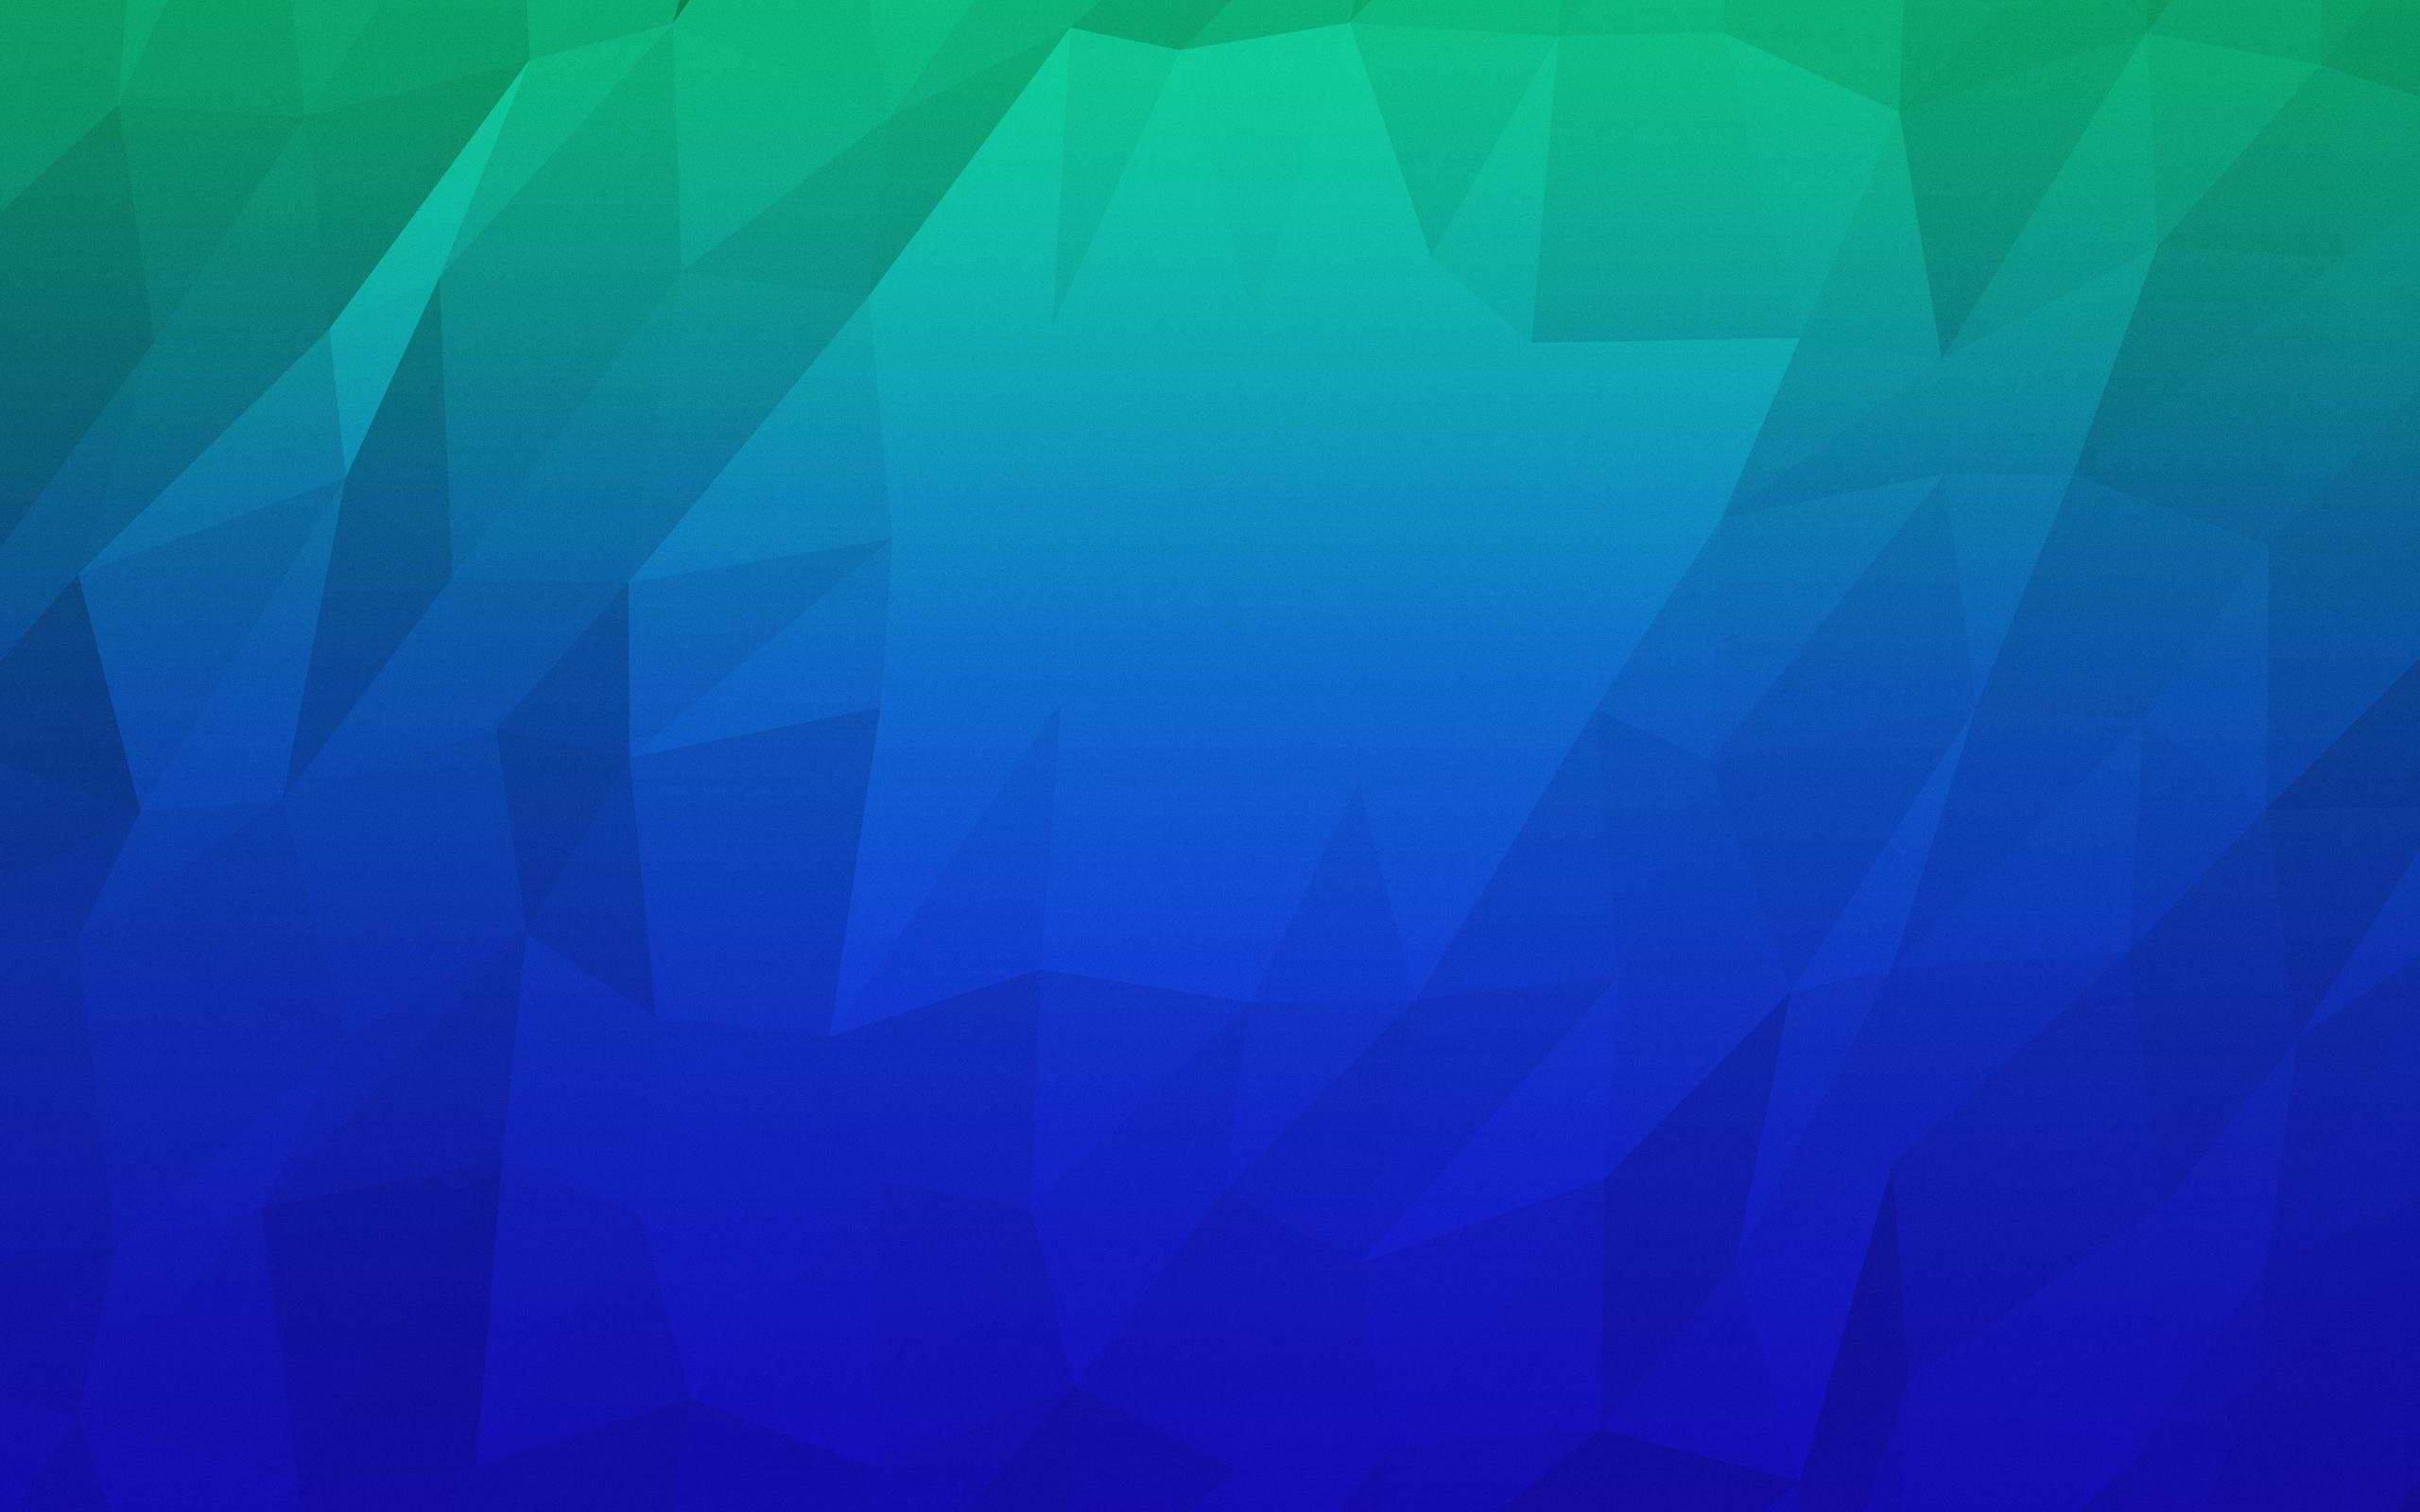 Free Download Blue Less Green Color Abstract Surface Wallpaper